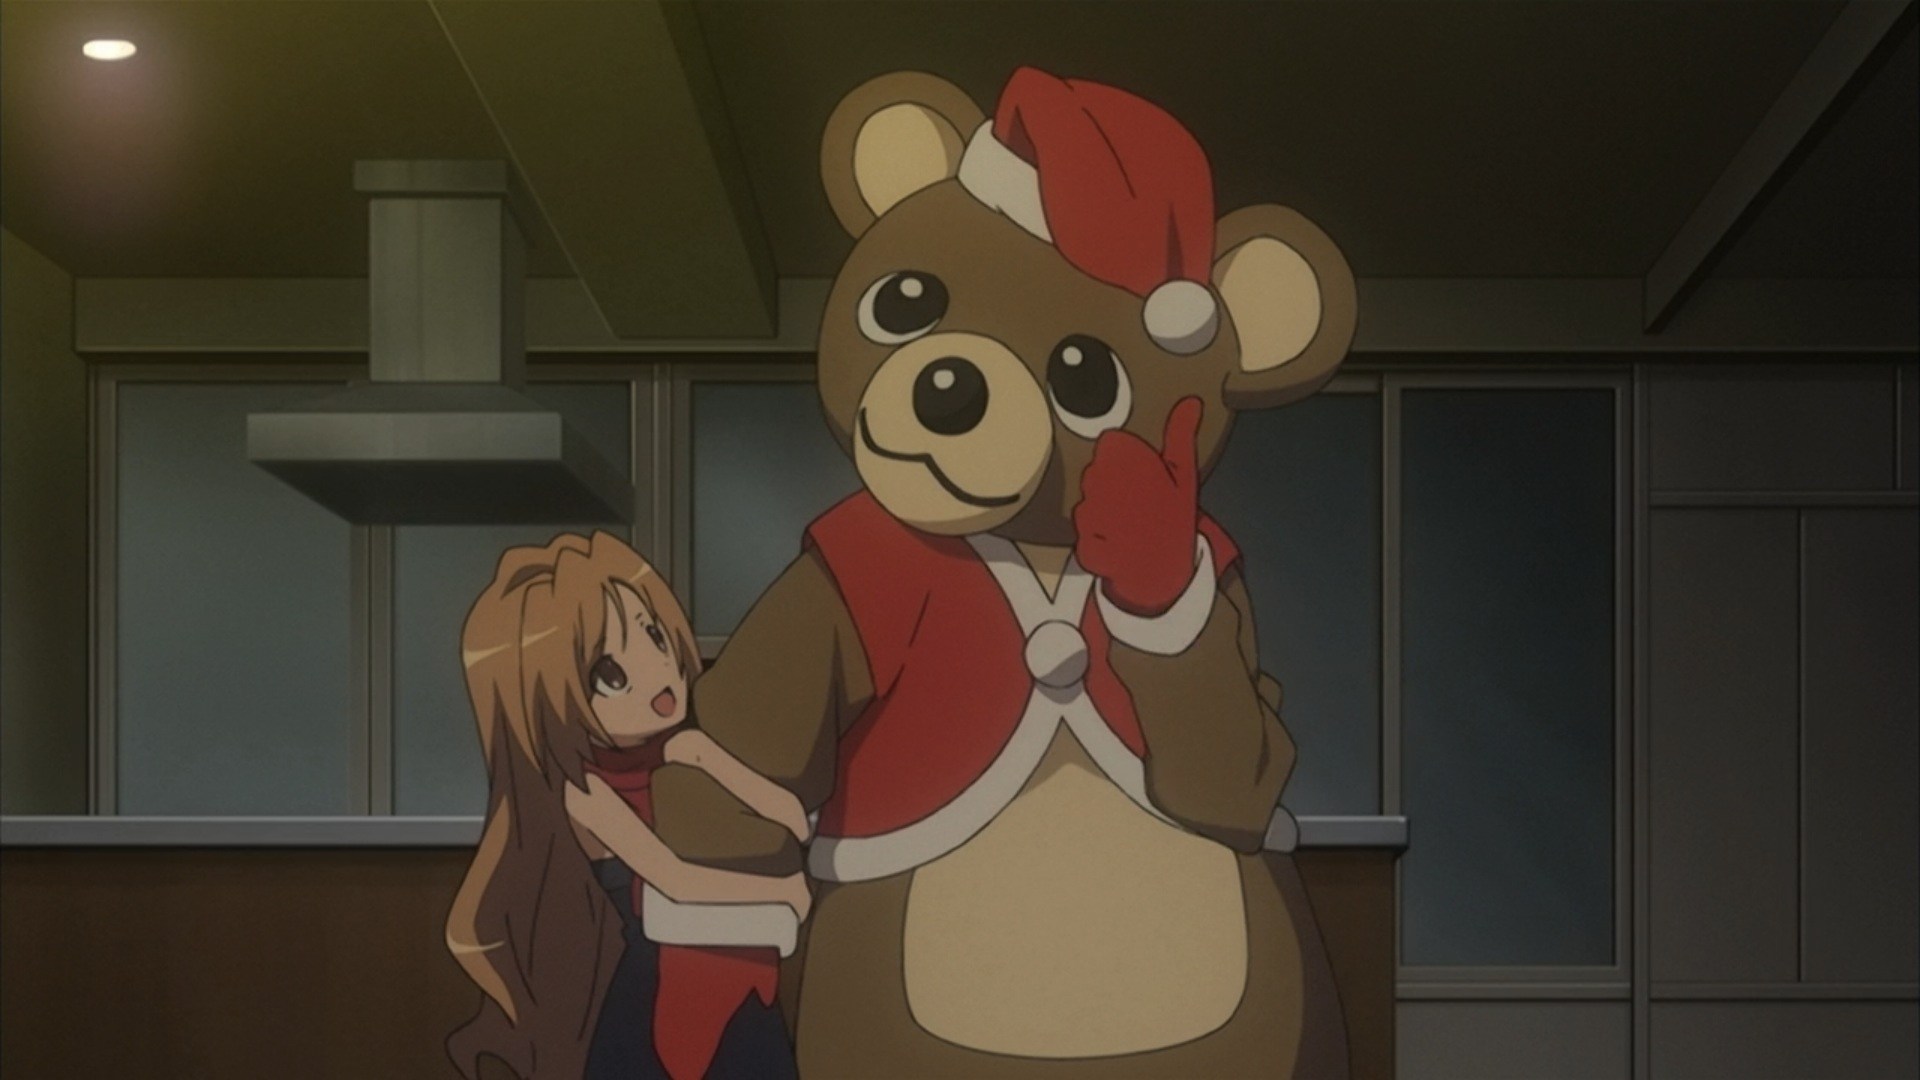 Wallpapers Gallery Falls Toradora Anime Episode 1 Toradora Anime Episode 1 Anime